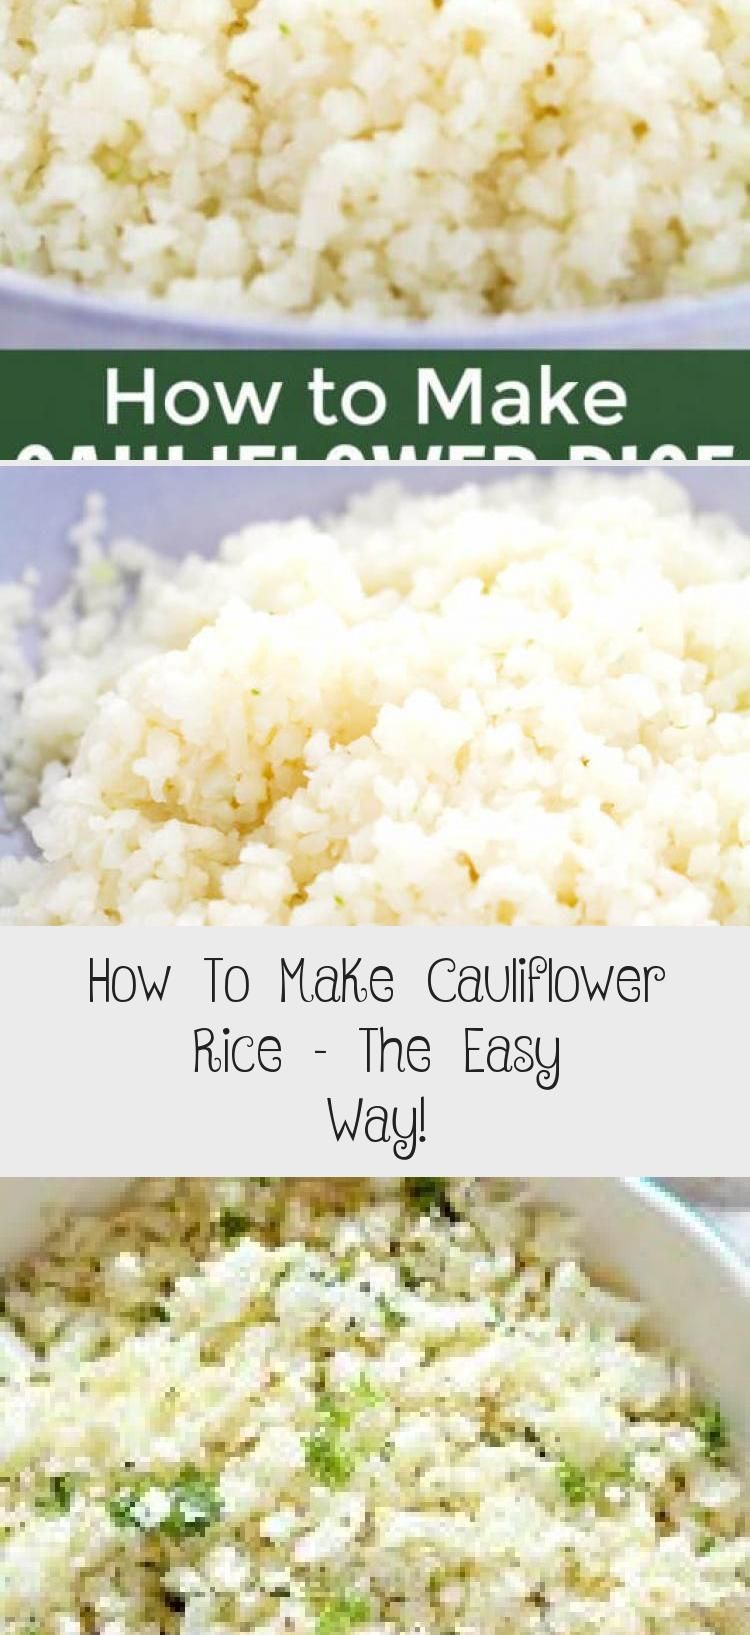 Missing Rice While On The Keto Diet Cauliflower Rice Is One Of The Most Satisfying Low Carb In 2020 Easy Cauliflower Rice Recipe Low Carb Side Dishes Cauliflower Rice